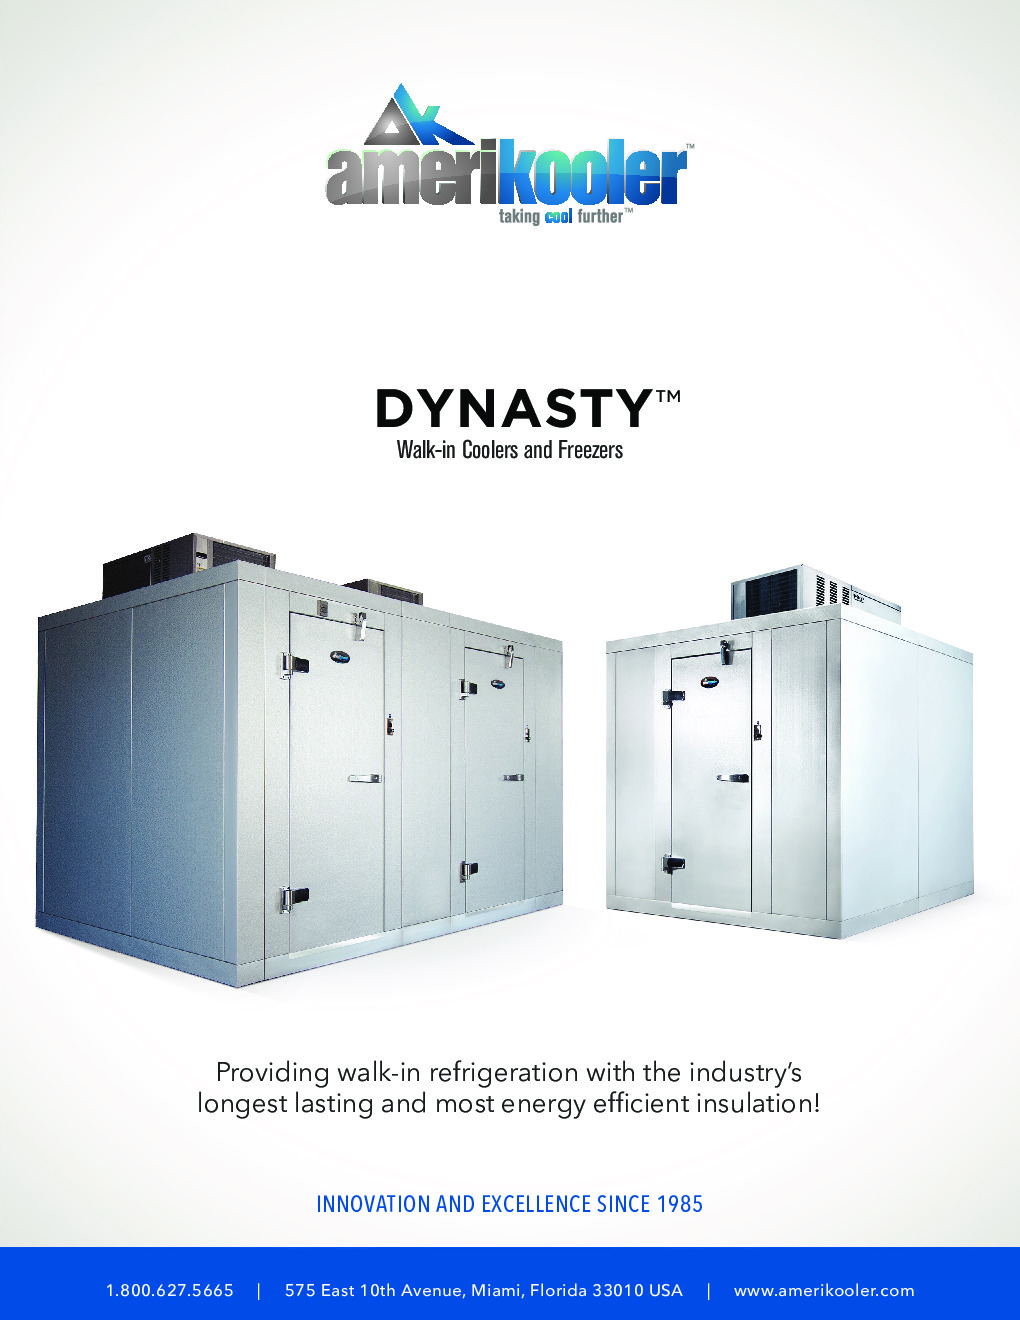 AmeriKooler DW081477F-6/8 Indoor 8' X 14' Walk-In, 8' L Cooler with Floor and 6' L Freezer, Box Only